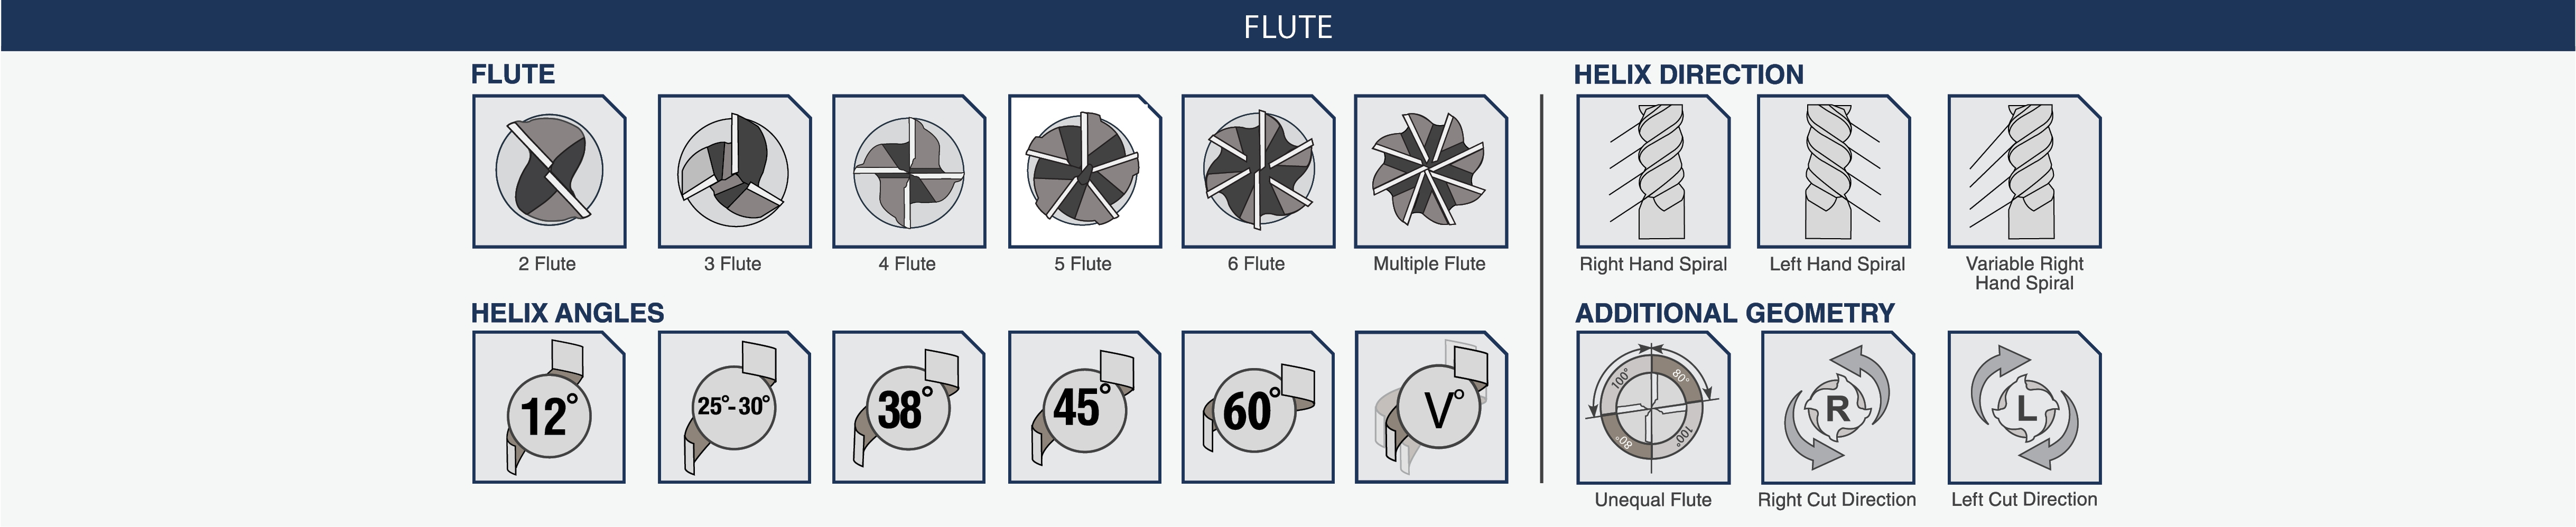 Icon Index for Flutes